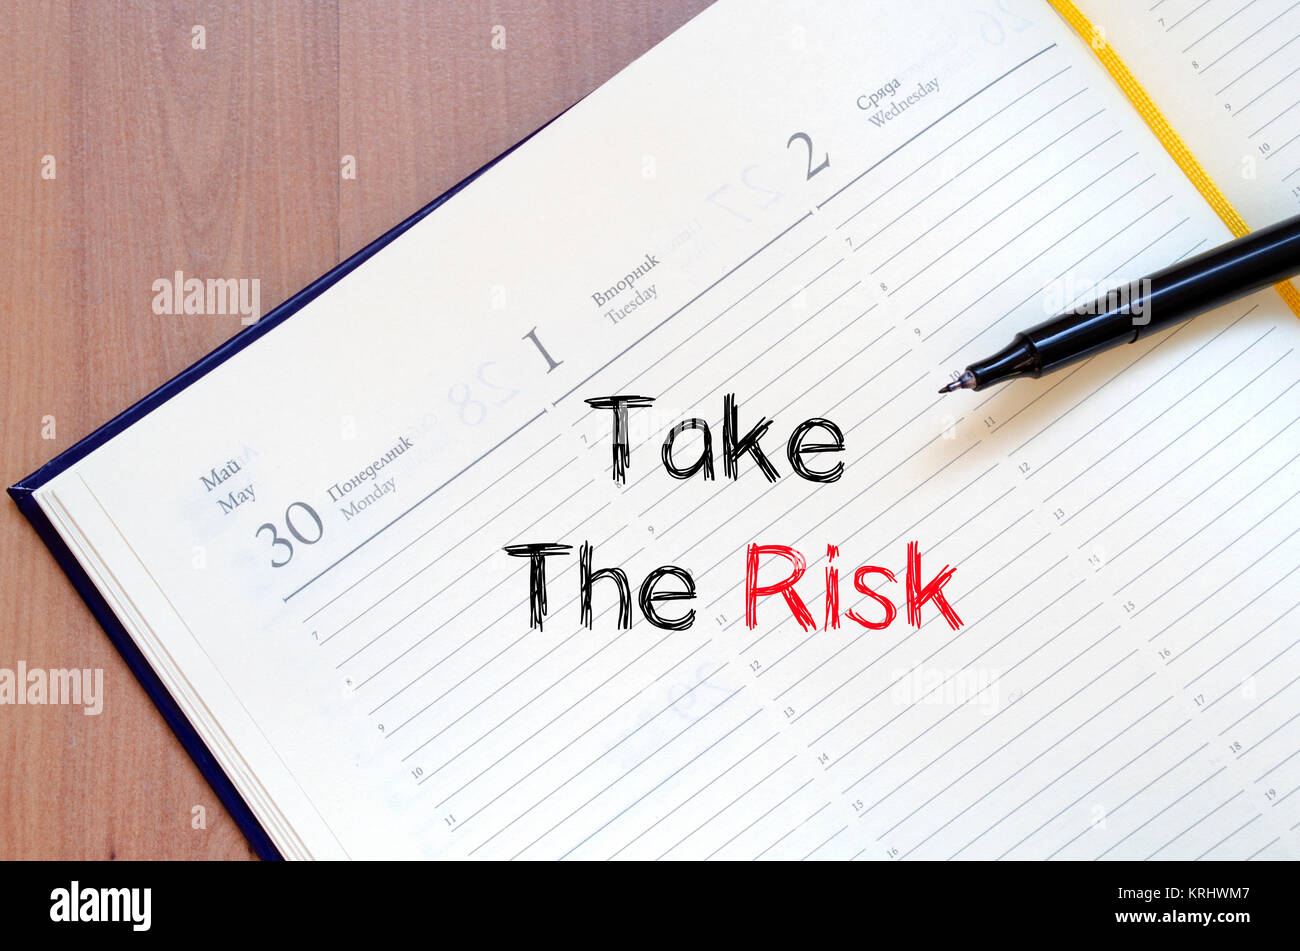 Take the risk text concept on notebook - Stock Image